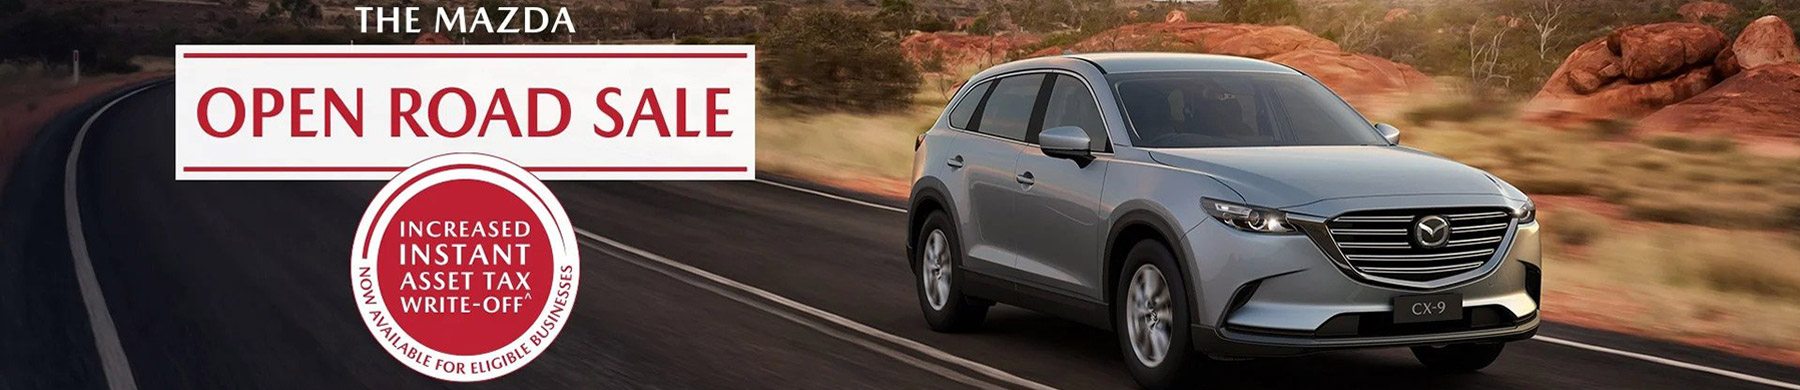 Mazda Special Offers Open Road Sale